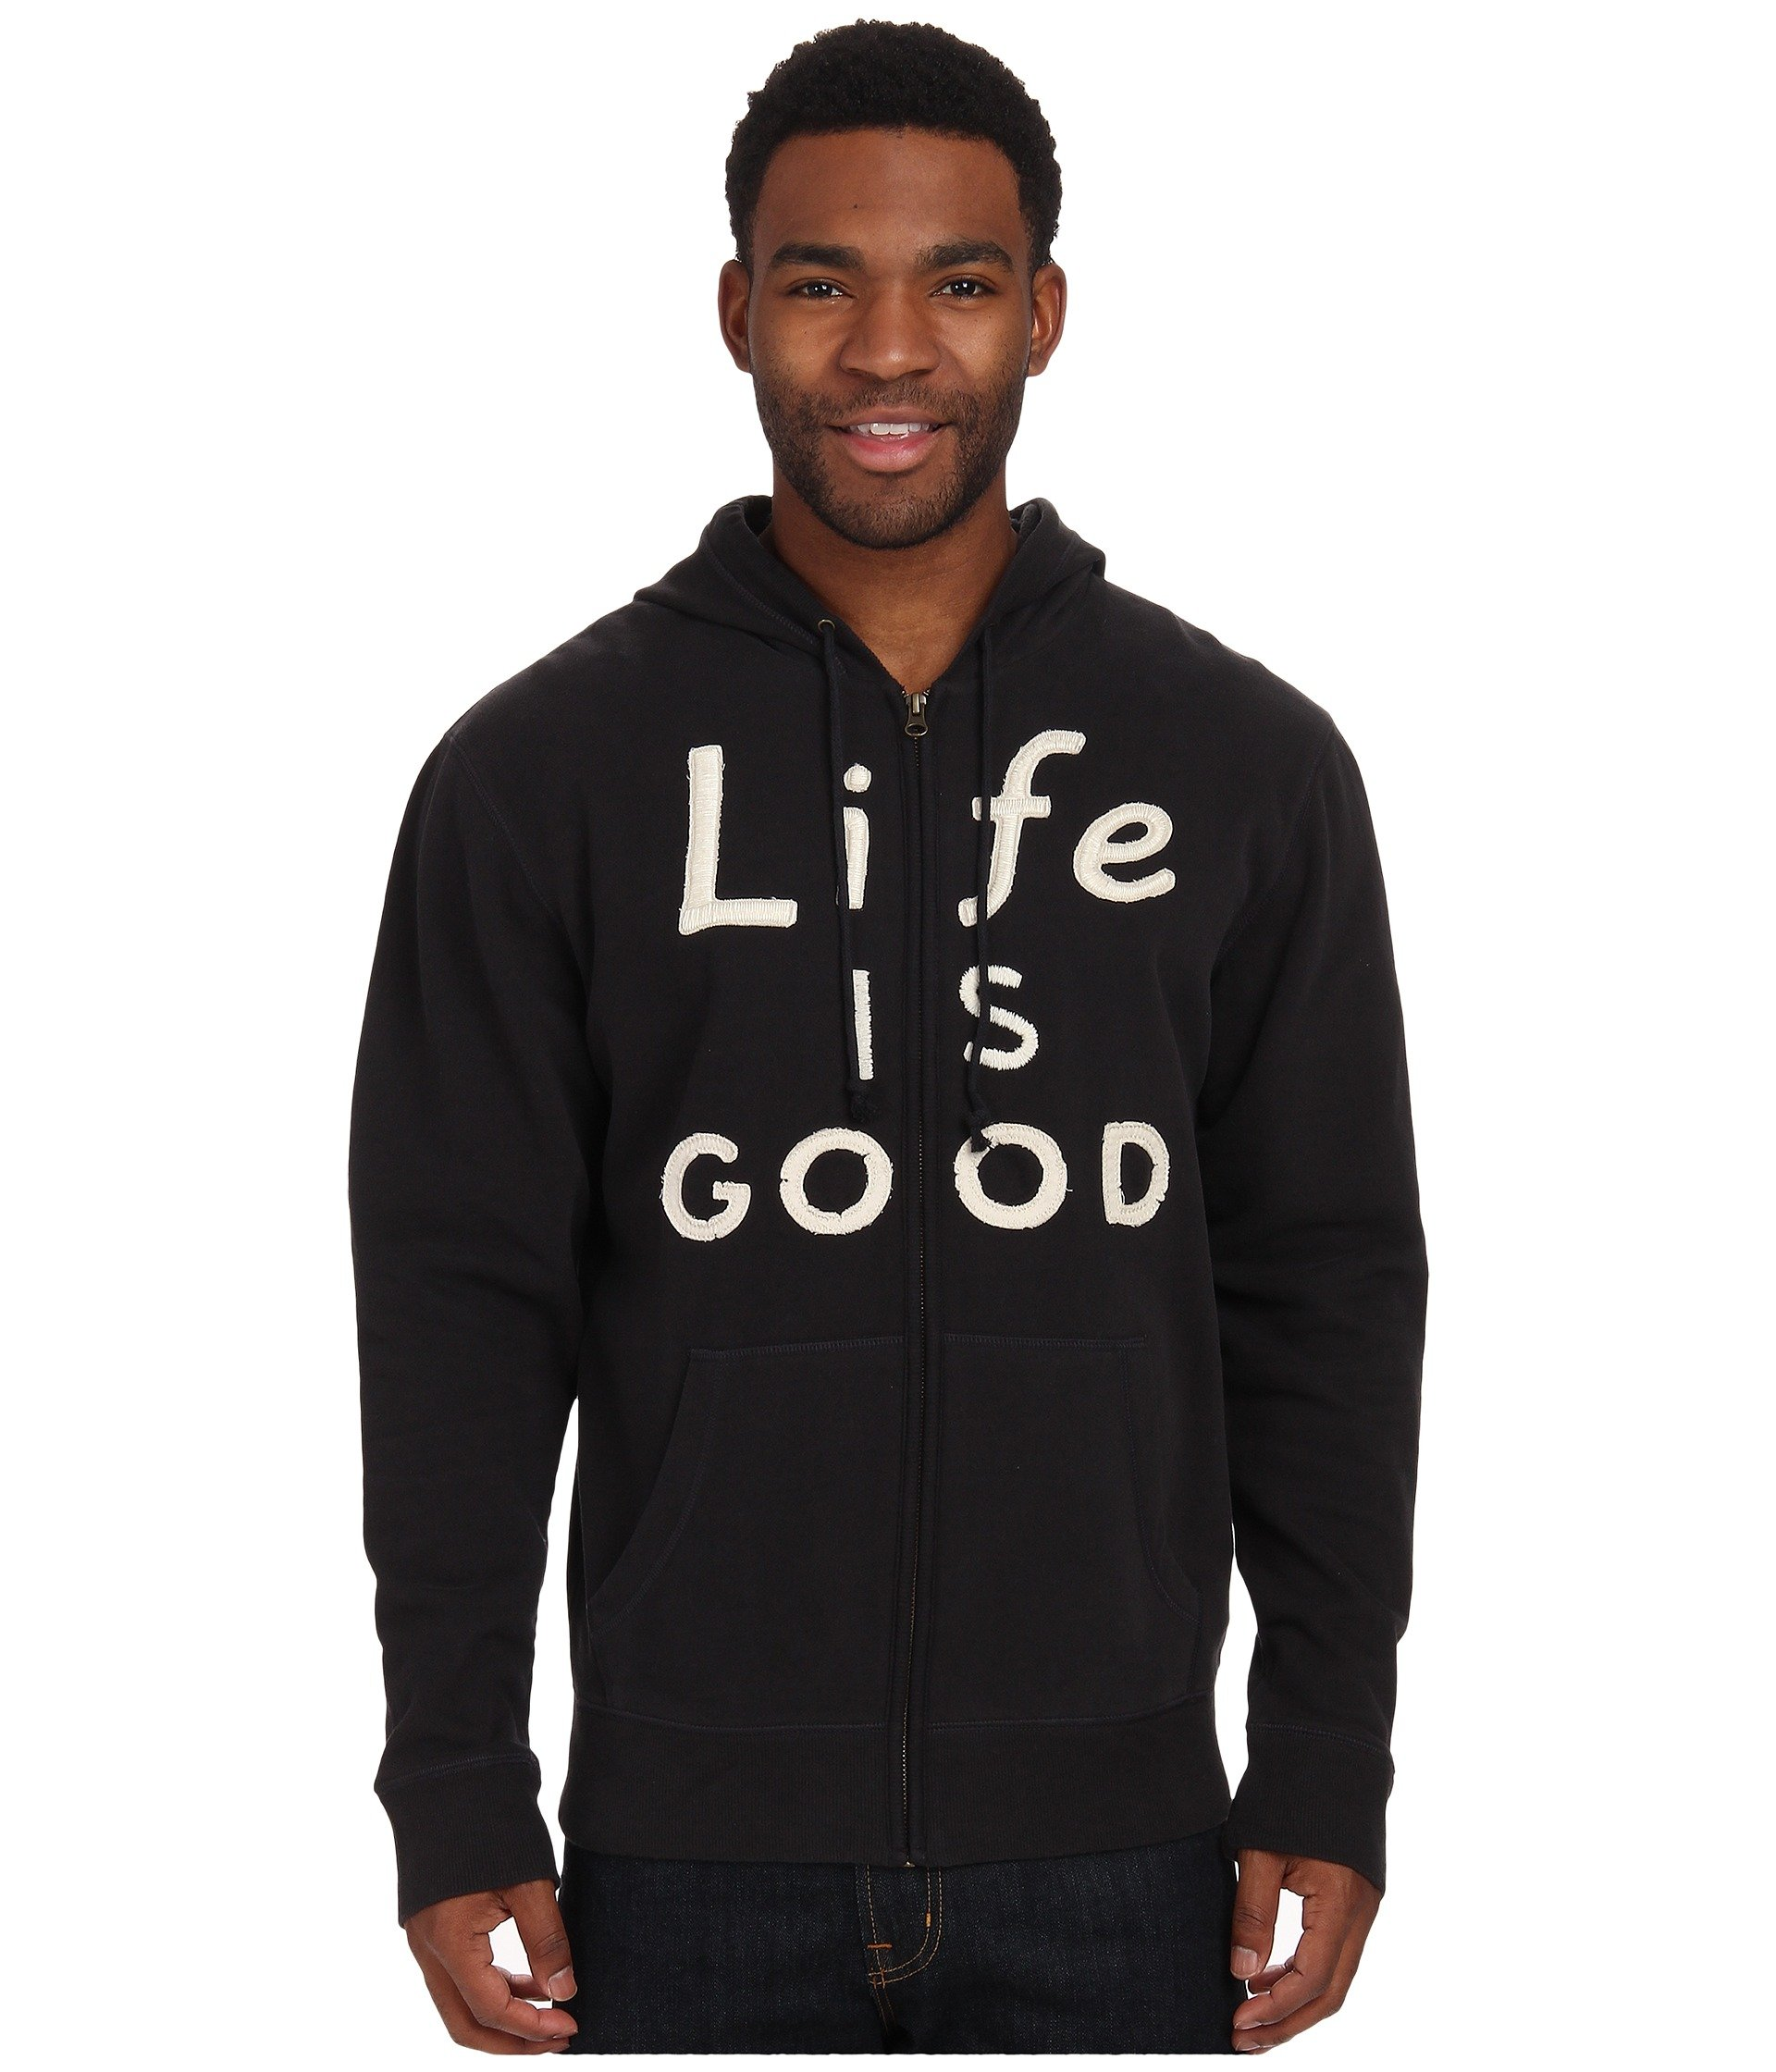 Buzo o Chaqueta Deportiva para Hombre Life is Good All Good Zip Hoodie  + Life is Good en VeoyCompro.net